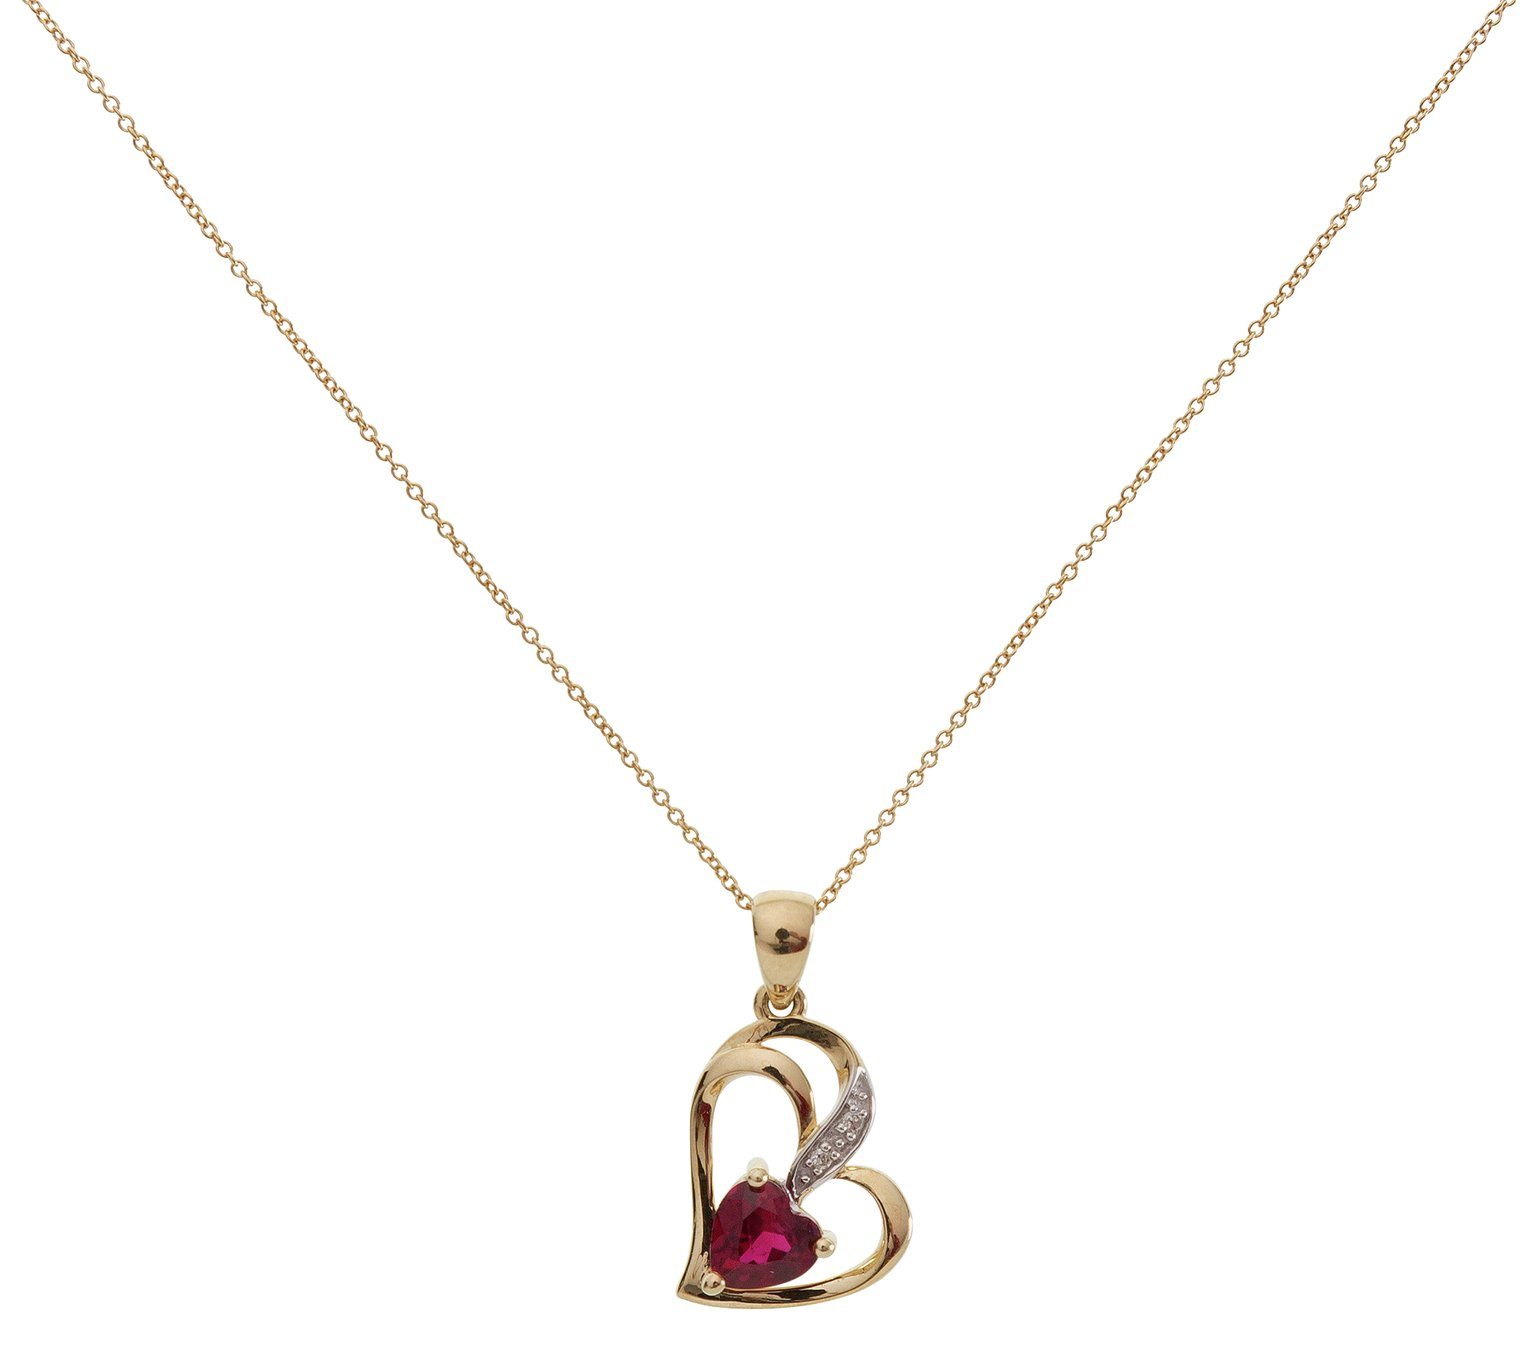 Revere 9ct Gold Ruby Diamond Accent Pendant 18 Inch Necklace